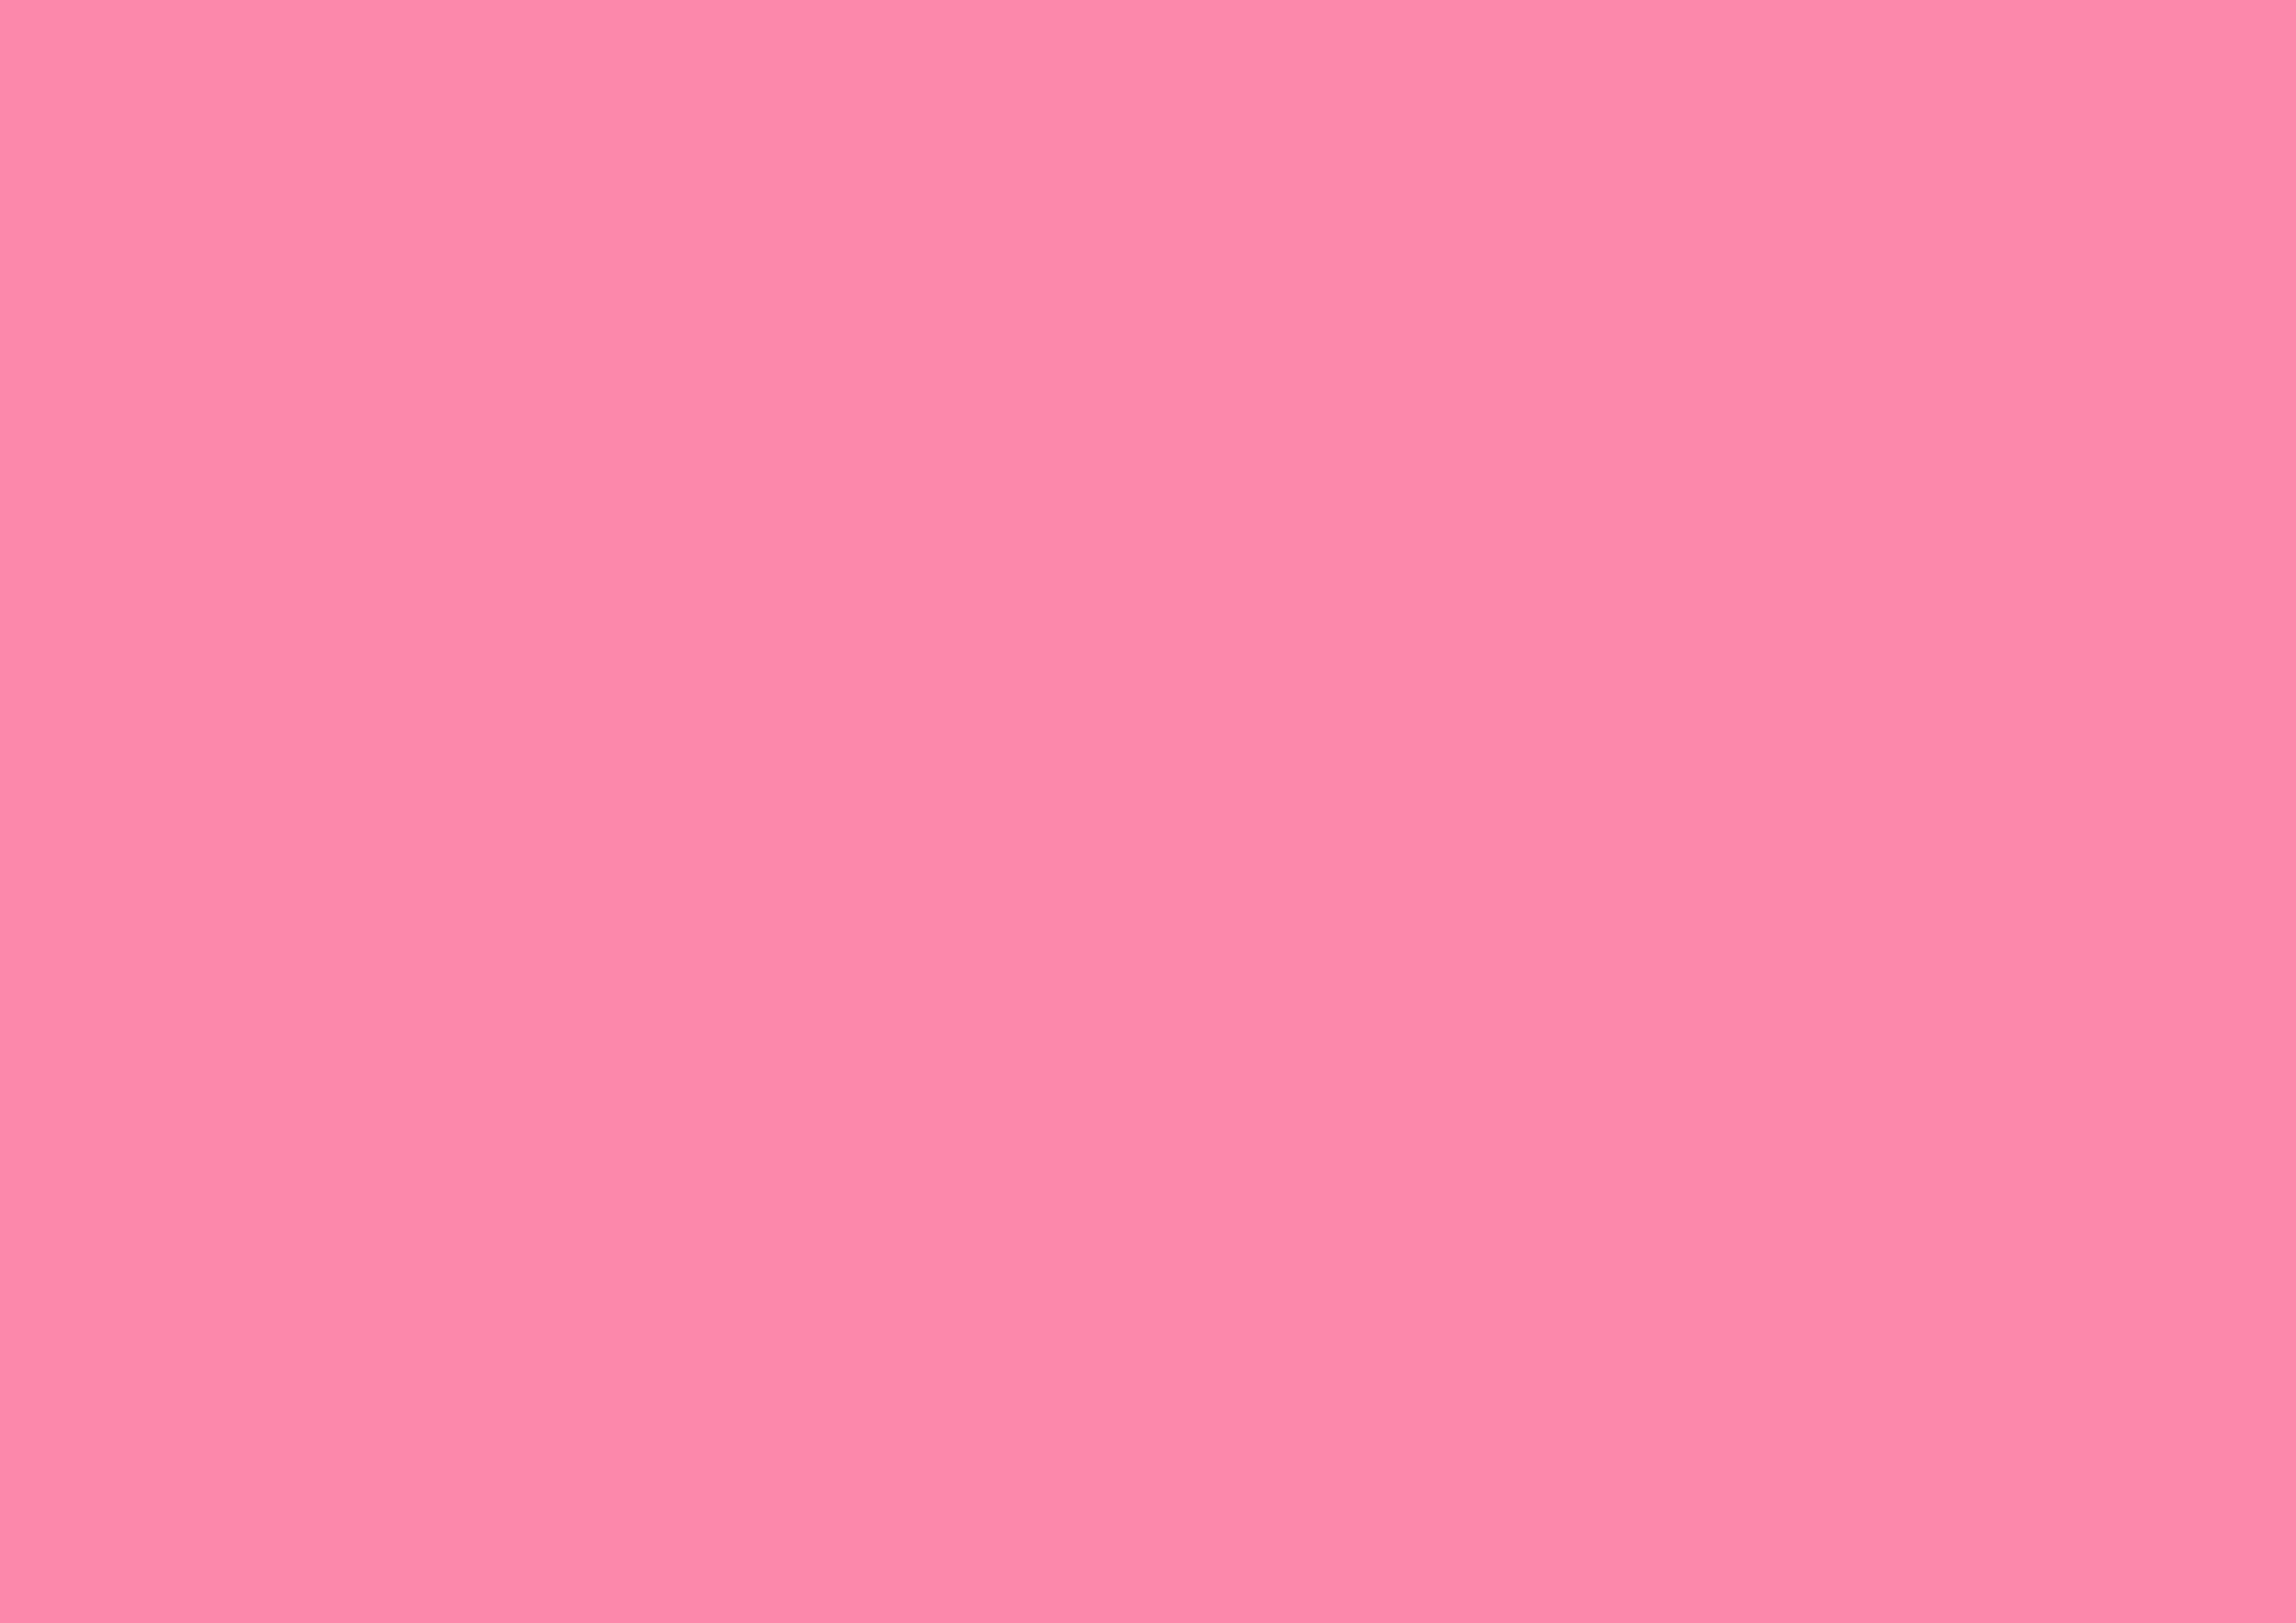 3508x2480 Tickle Me Pink Solid Color Background